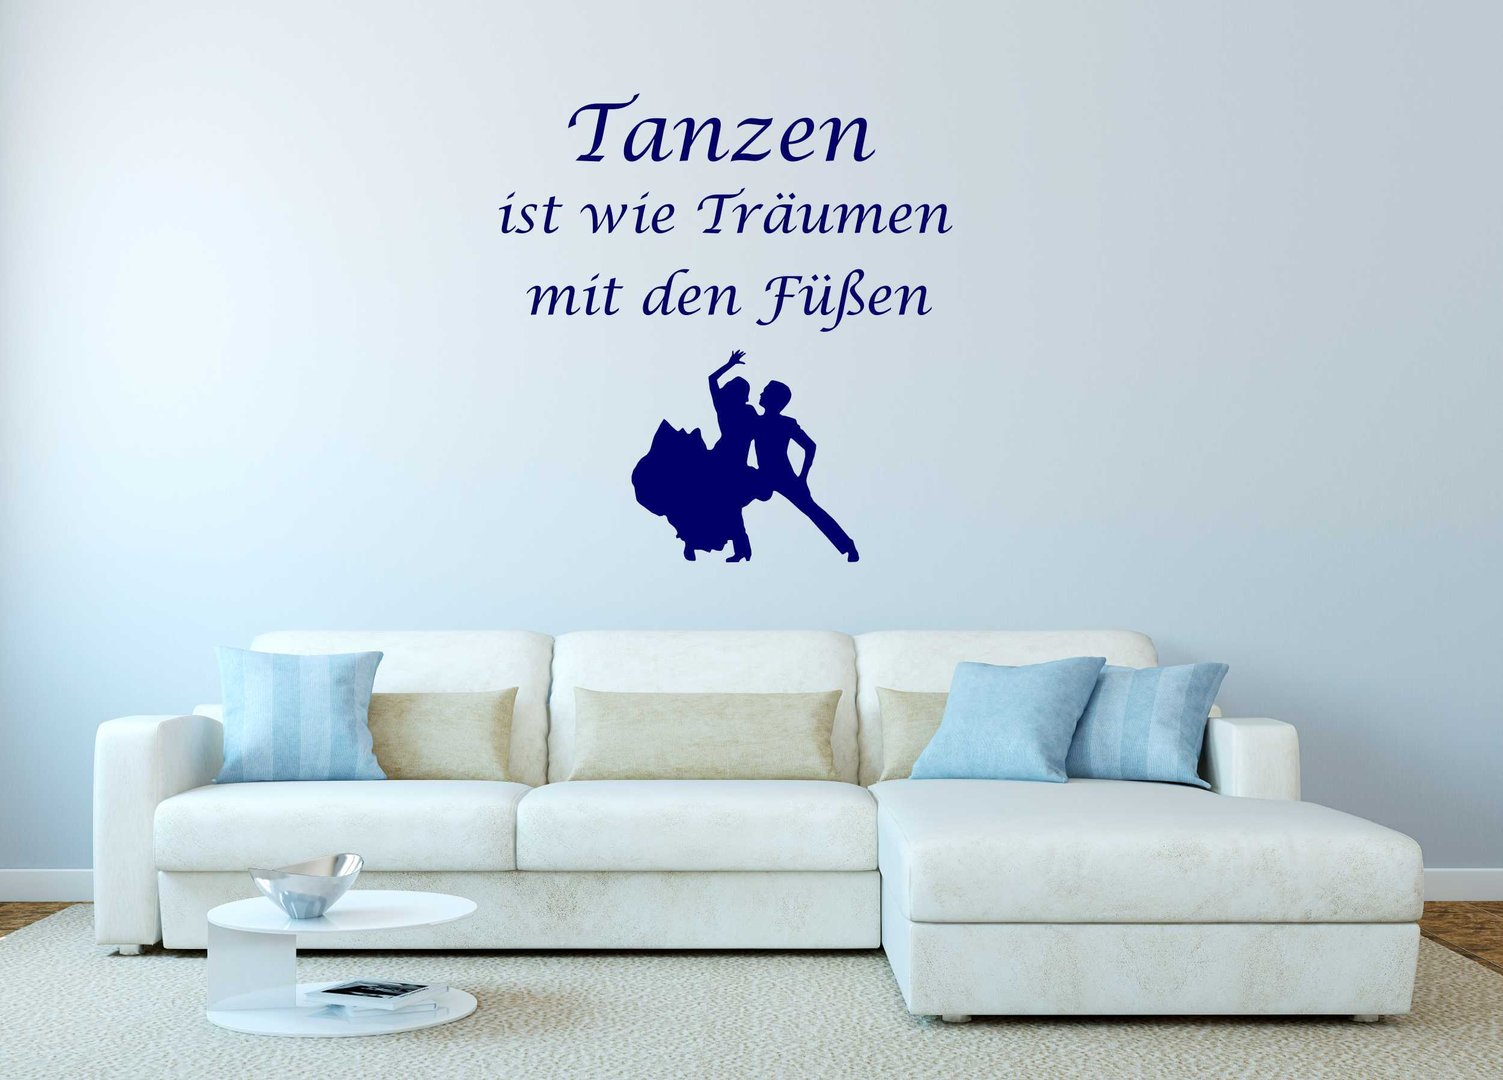 Fabulous Wandtattoo Bilder Collection Of - Tanzen Ist Wie Träumen.